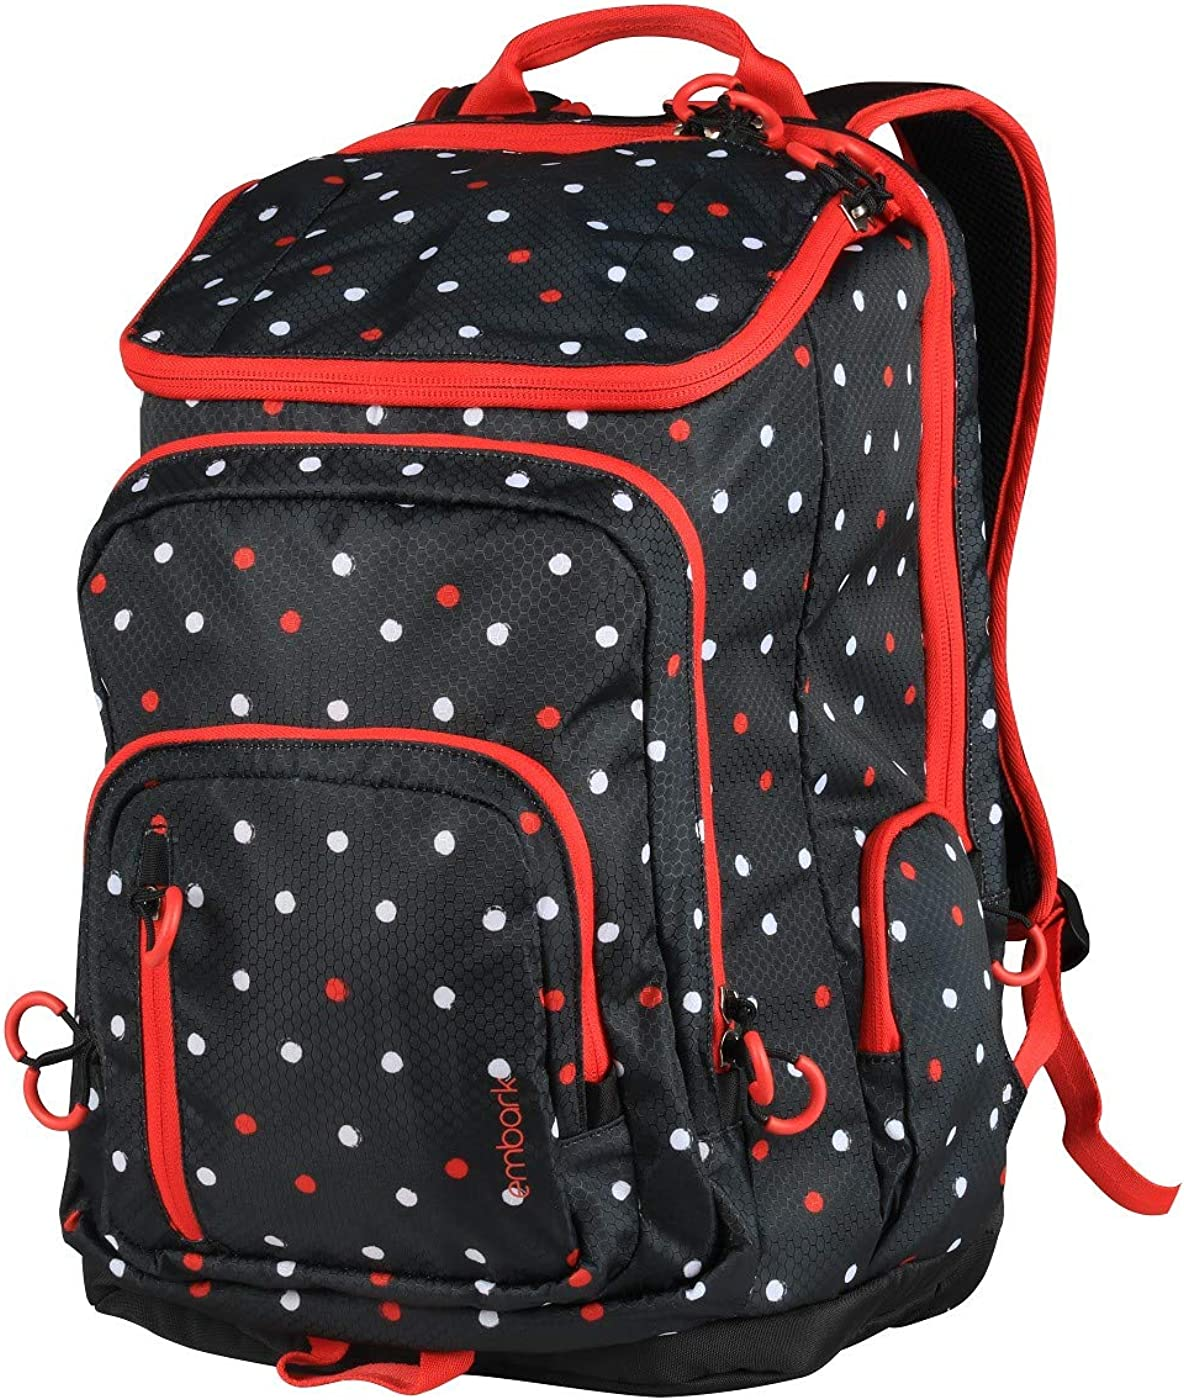 Embark 19 Jartop Elite Backpack-Black with red White Polka dots